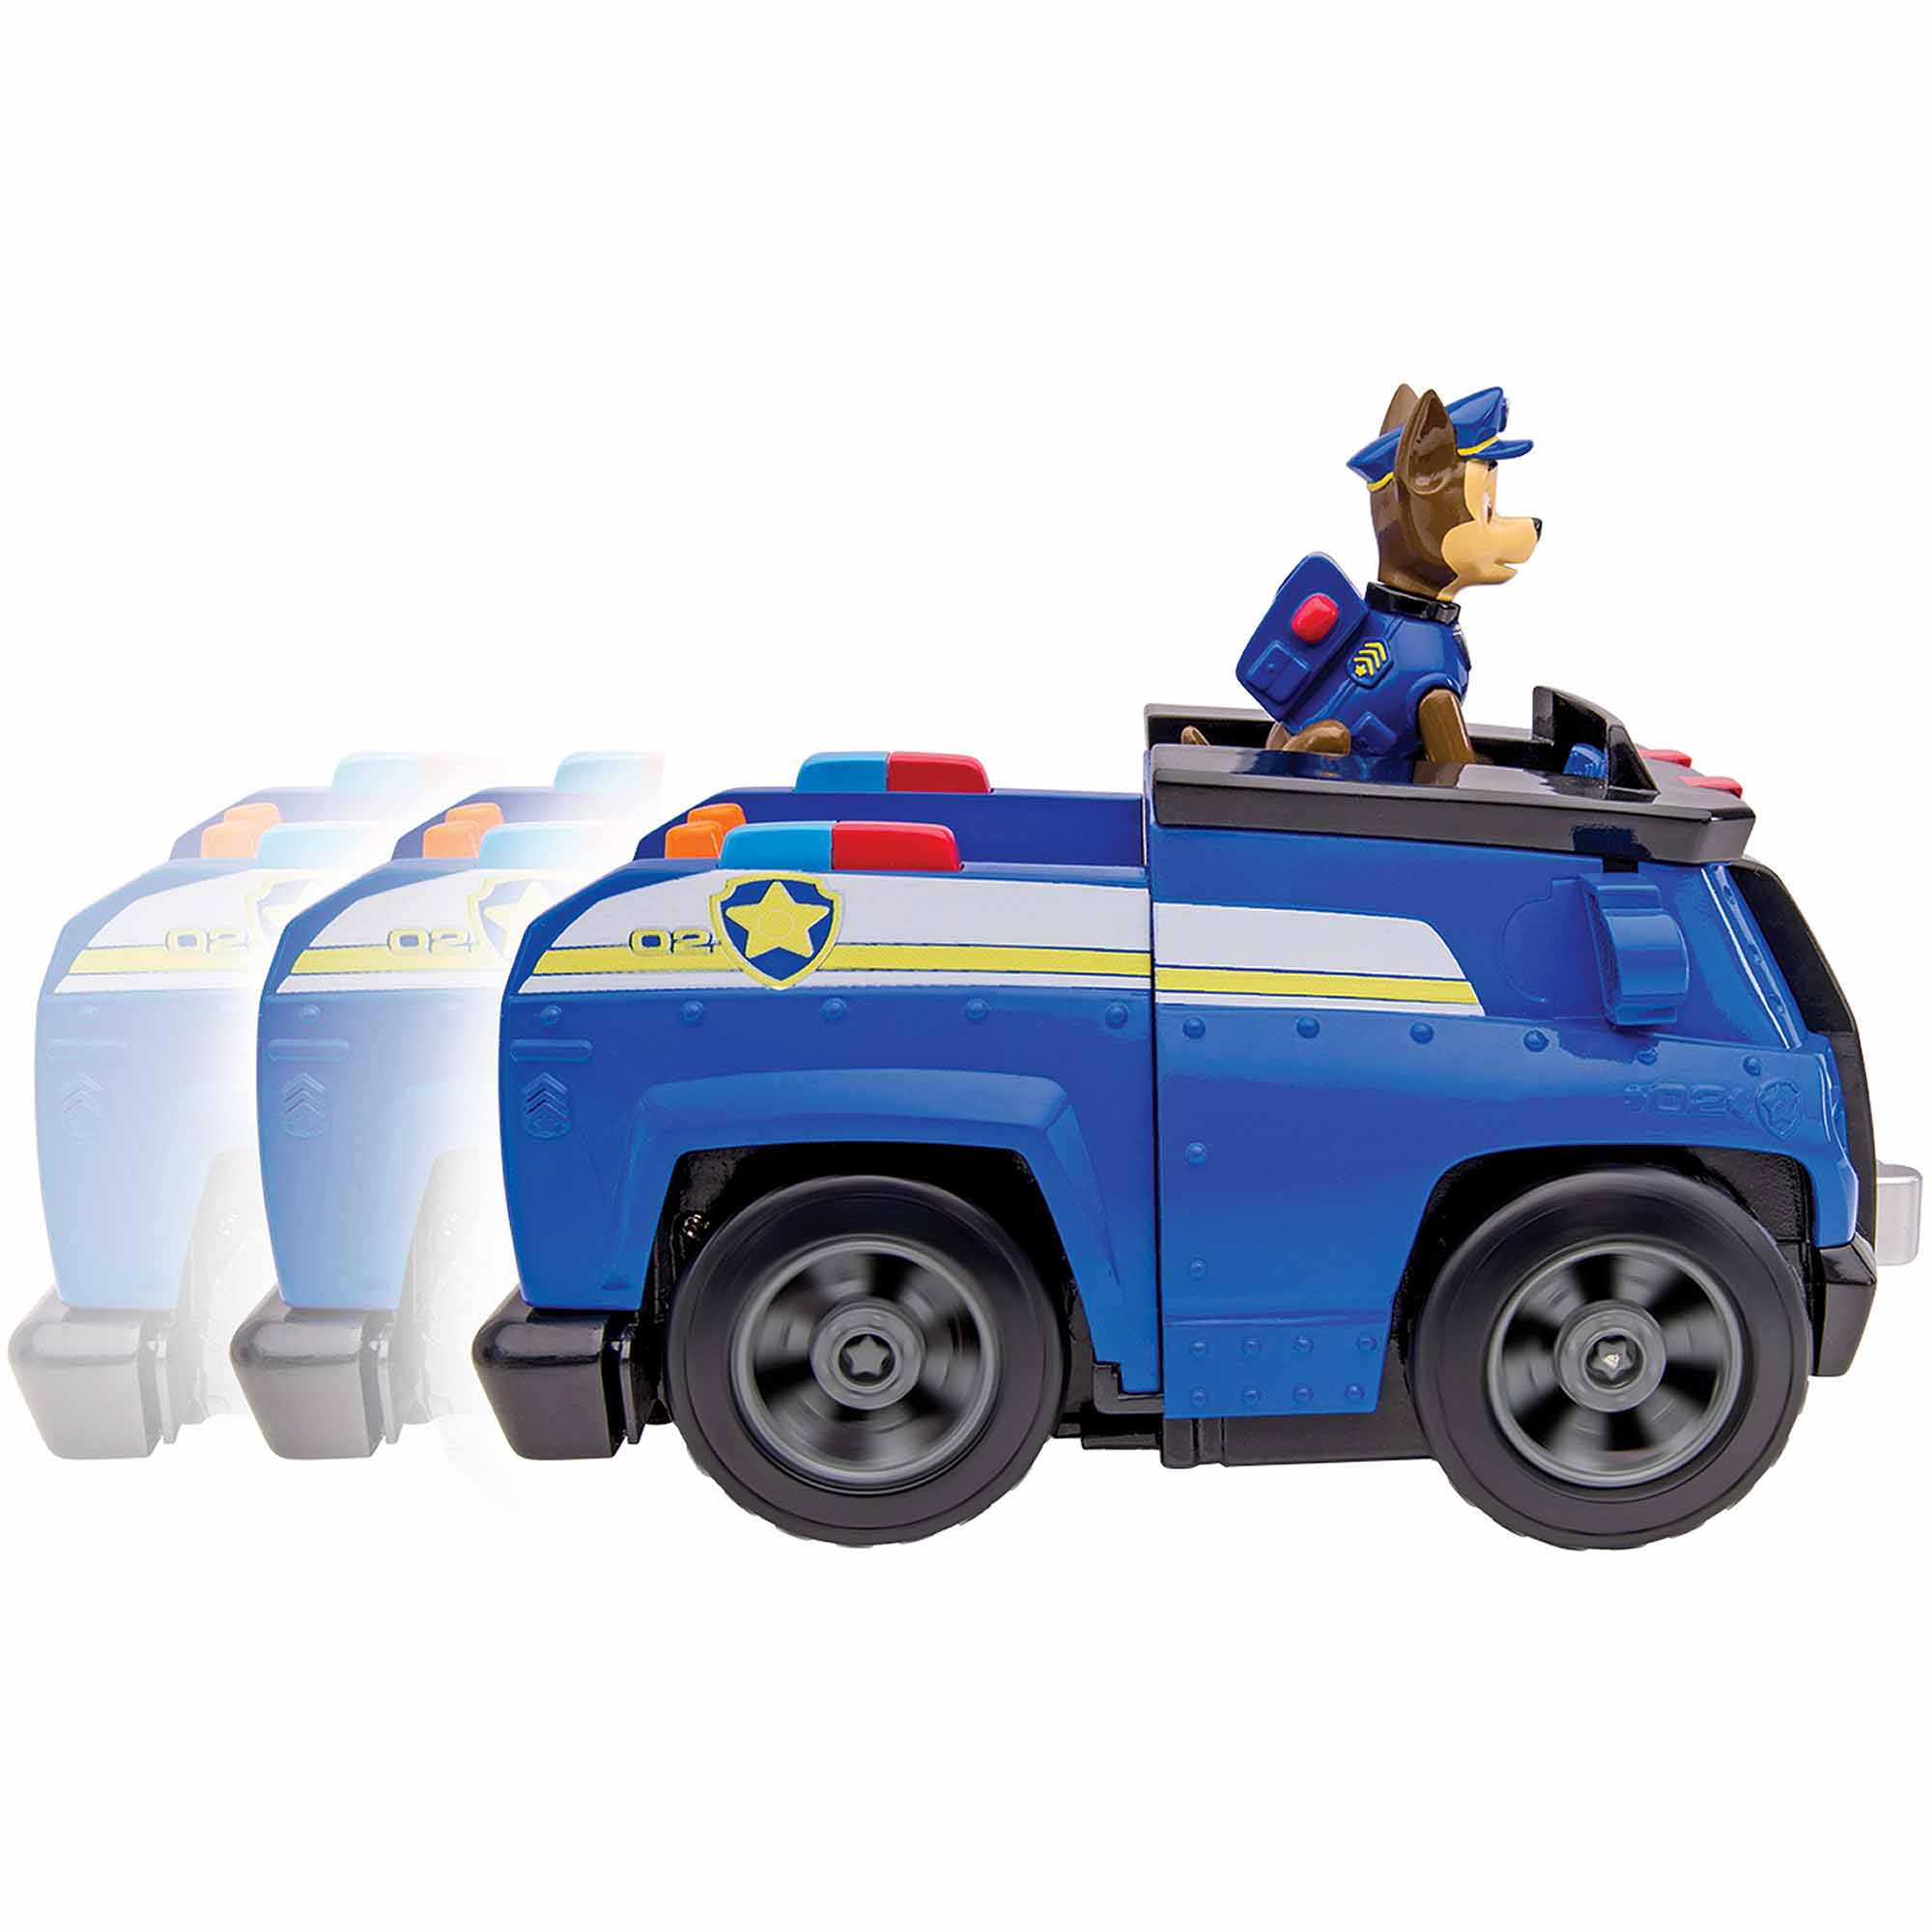 Paw Patrol On A Roll Chase, Figure And Vehicle With Sounds   Walmart.com